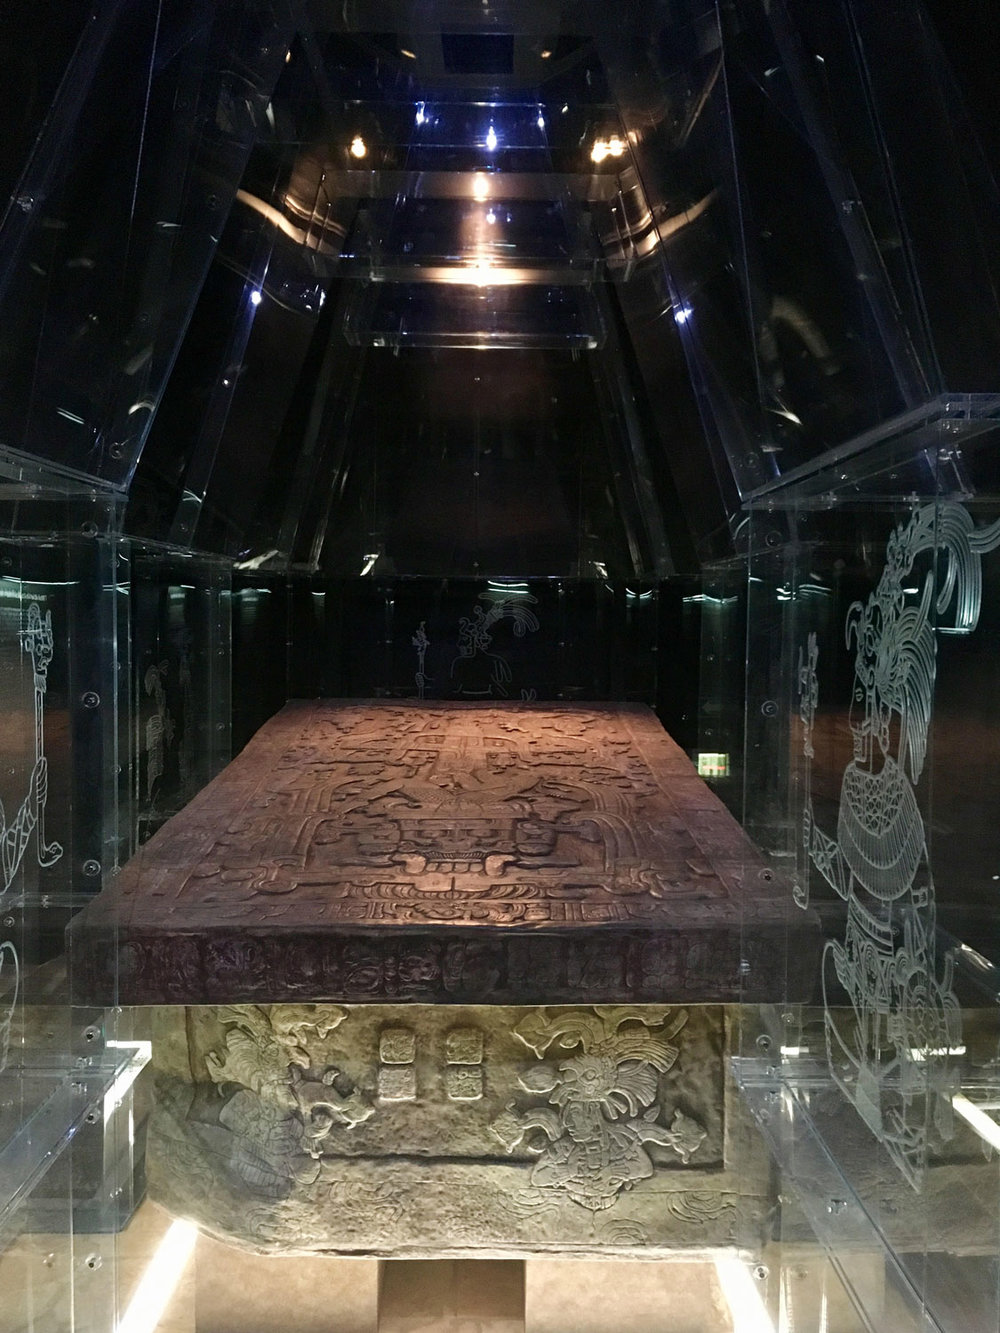 Pakal's tomb in Palenque museum.